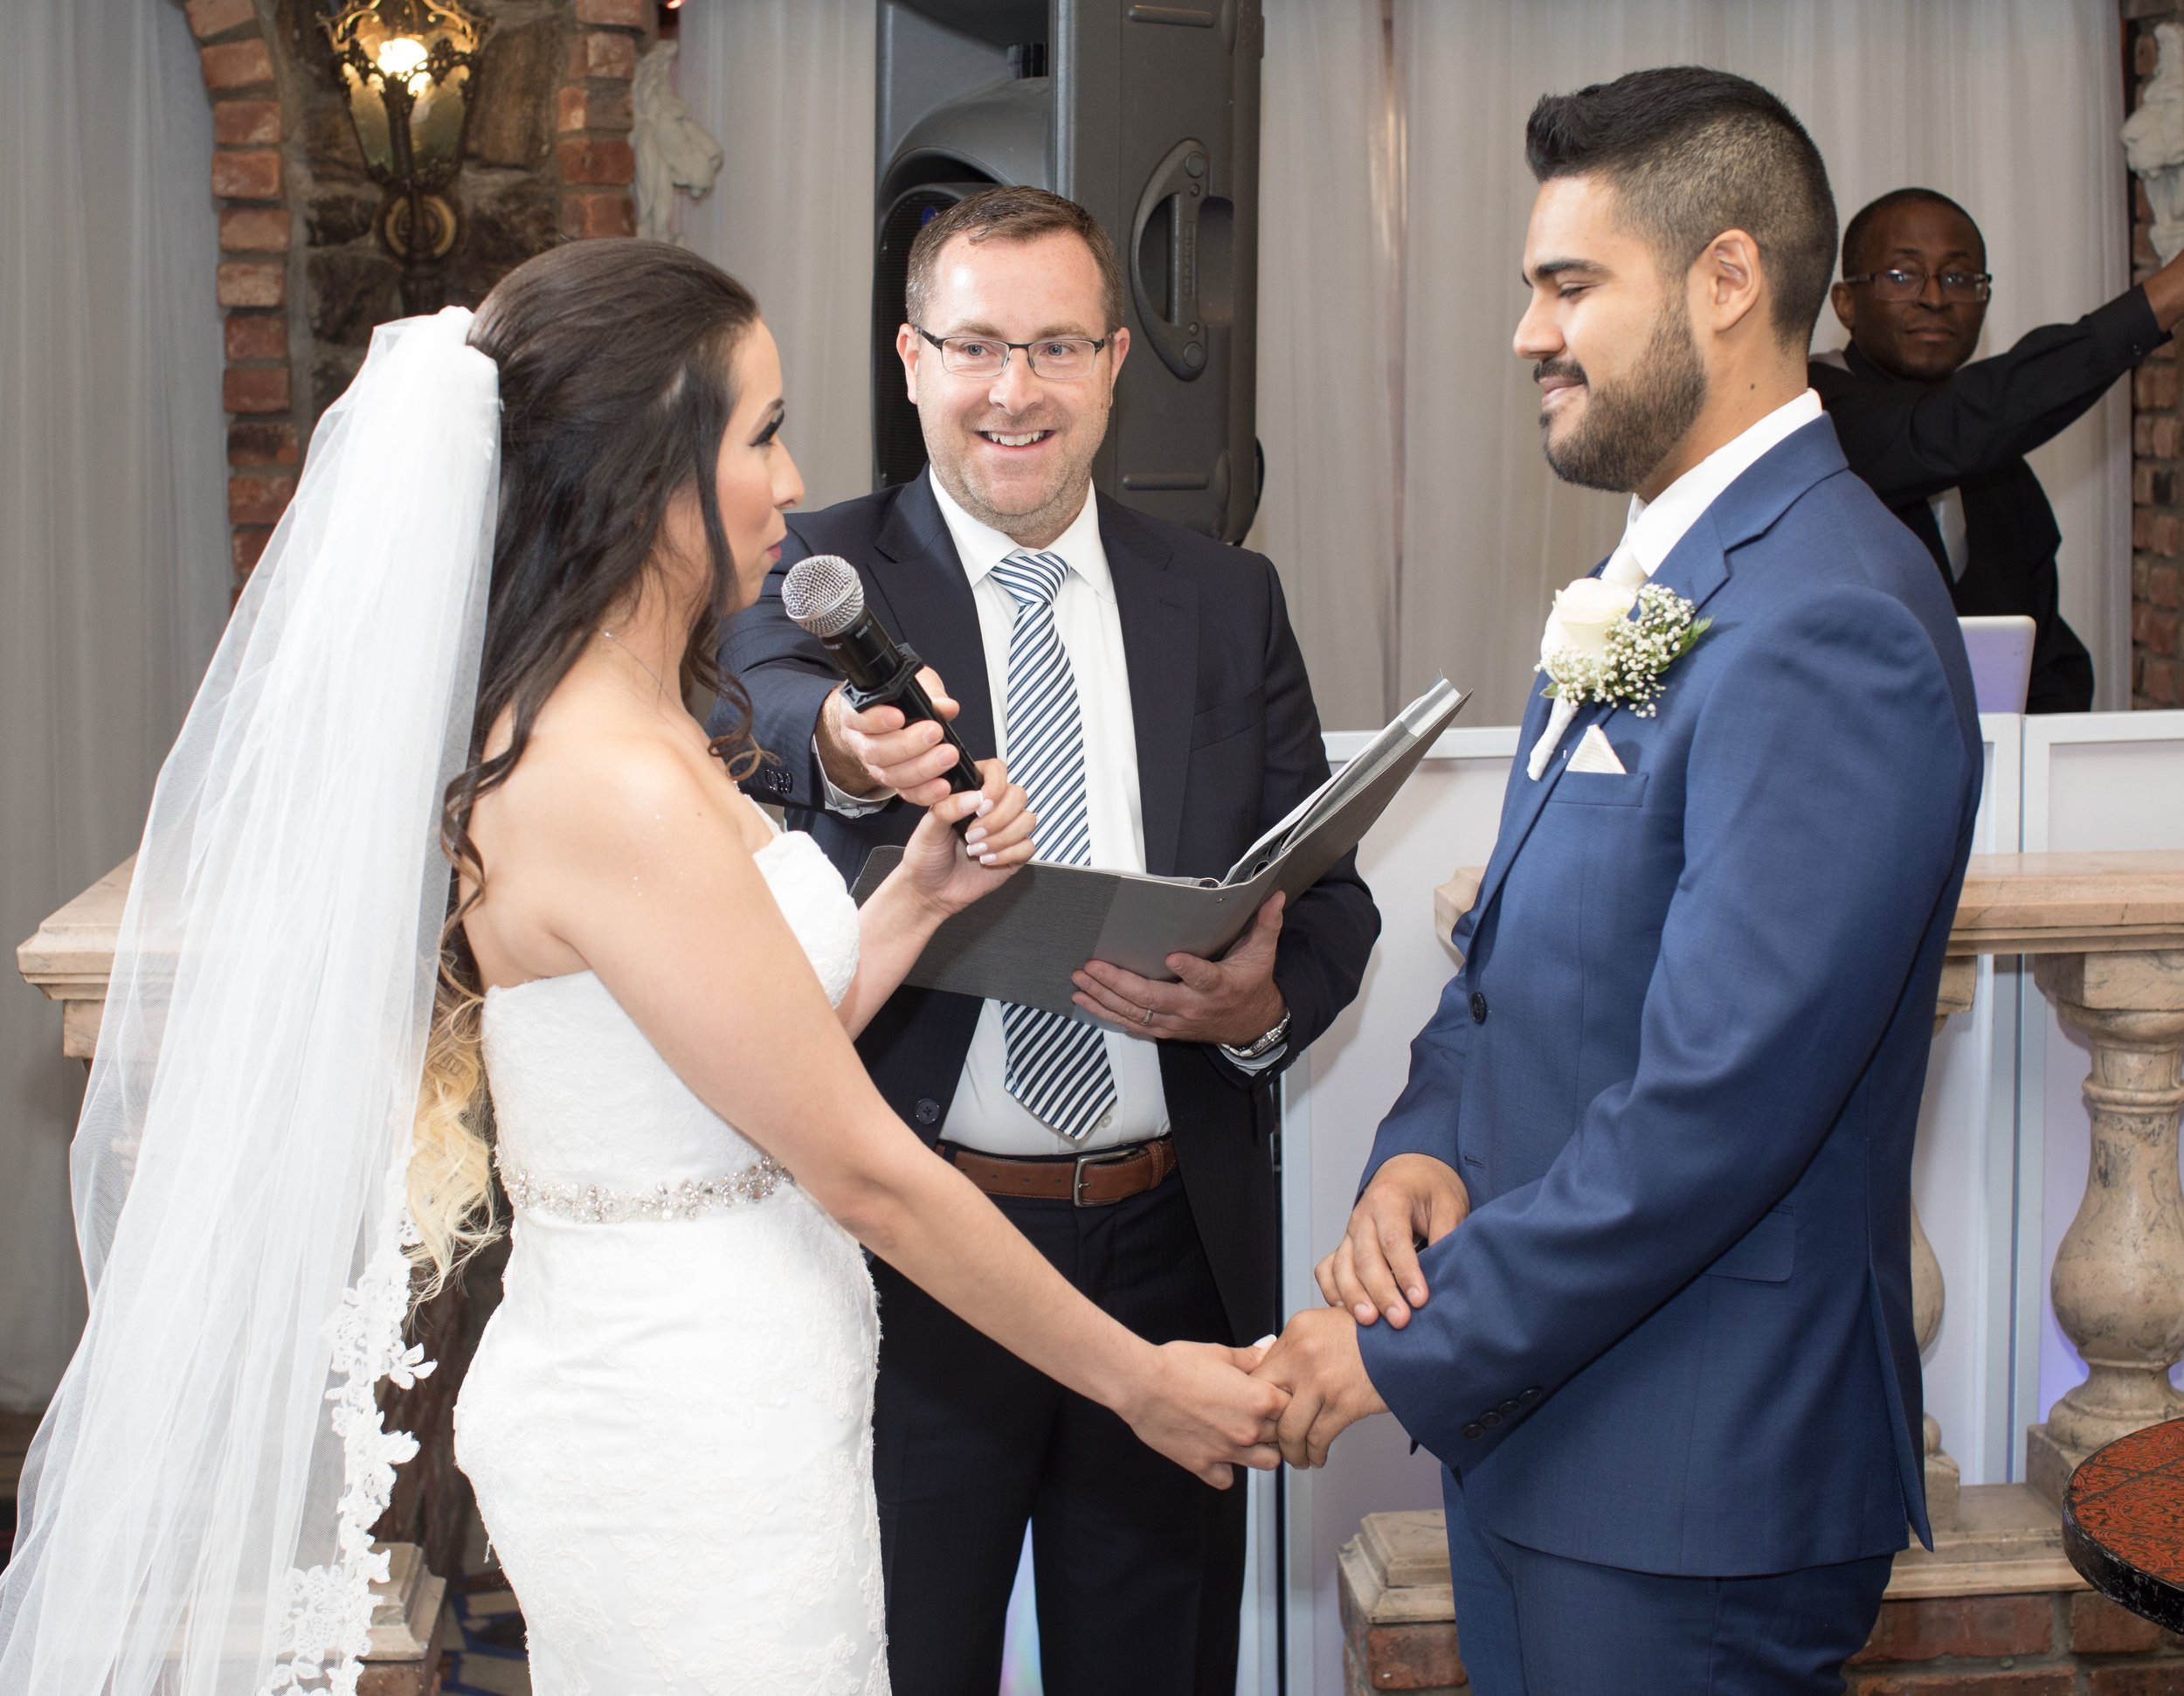 bilingual wedding officiant NYC.JPG